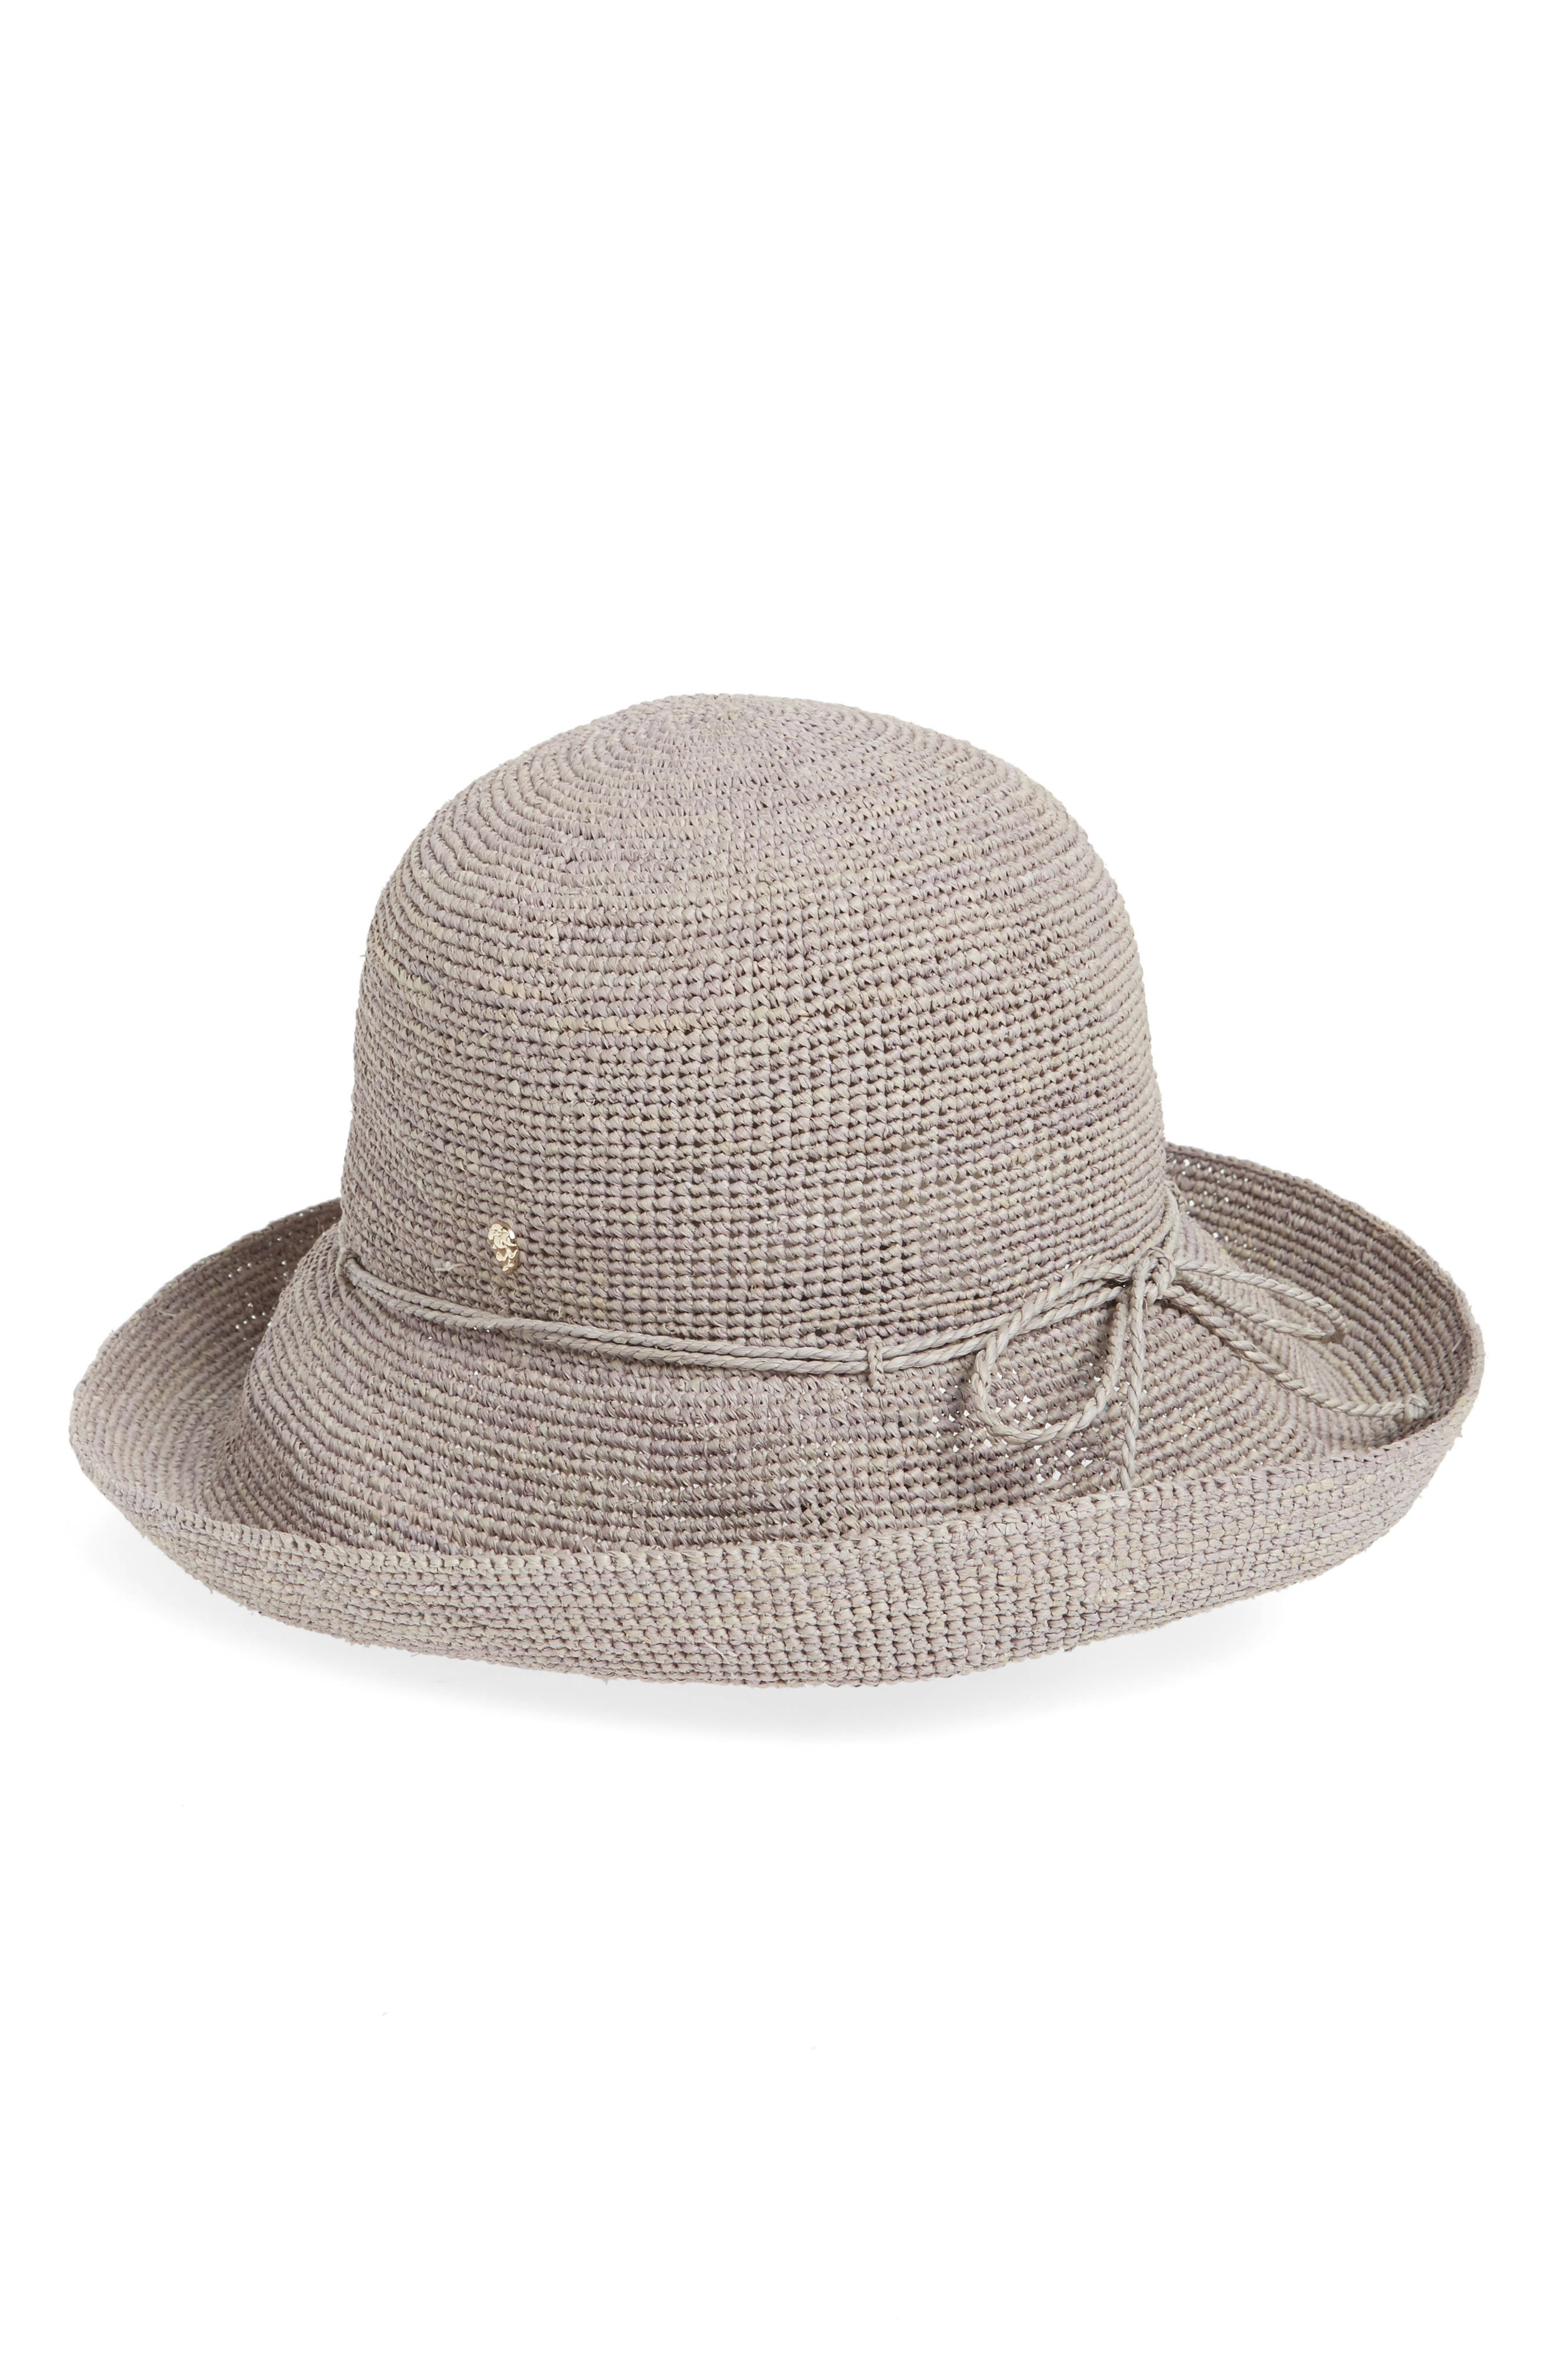 'Provence 10' Packable Raffia Hat,                             Main thumbnail 1, color,                             Eclipse Melange